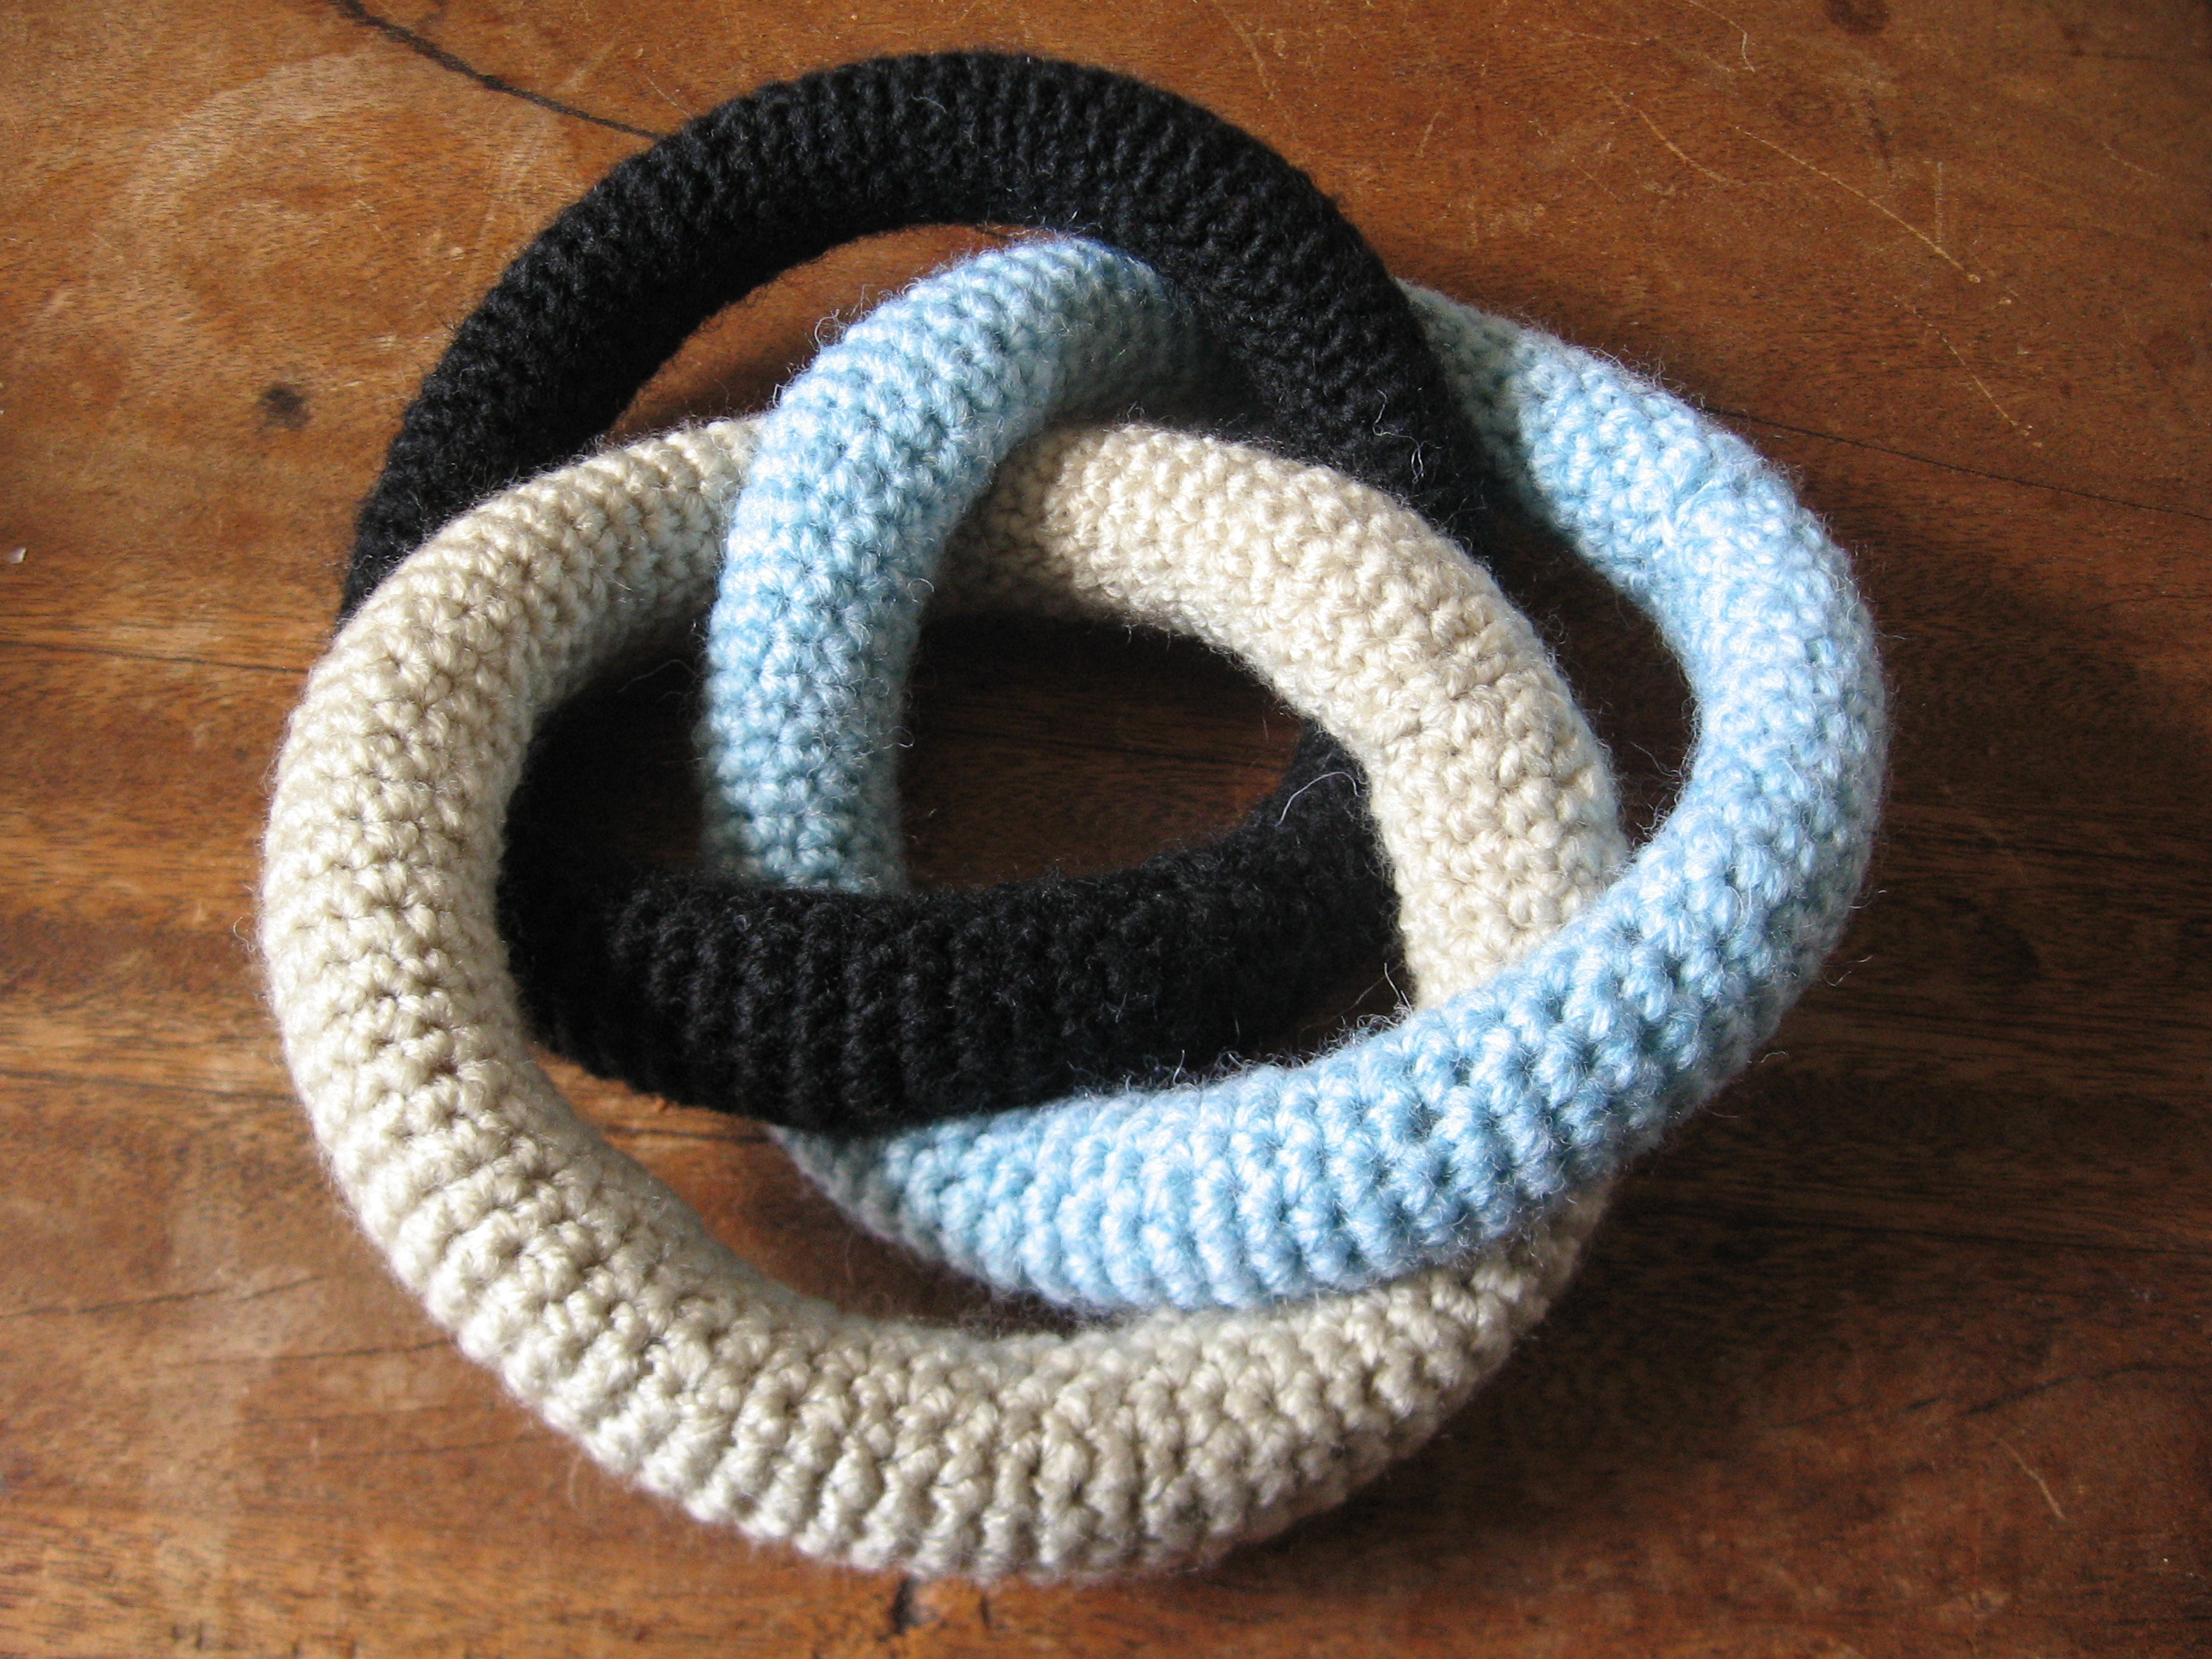 Make your own Borromean rings! (You know you want to.)